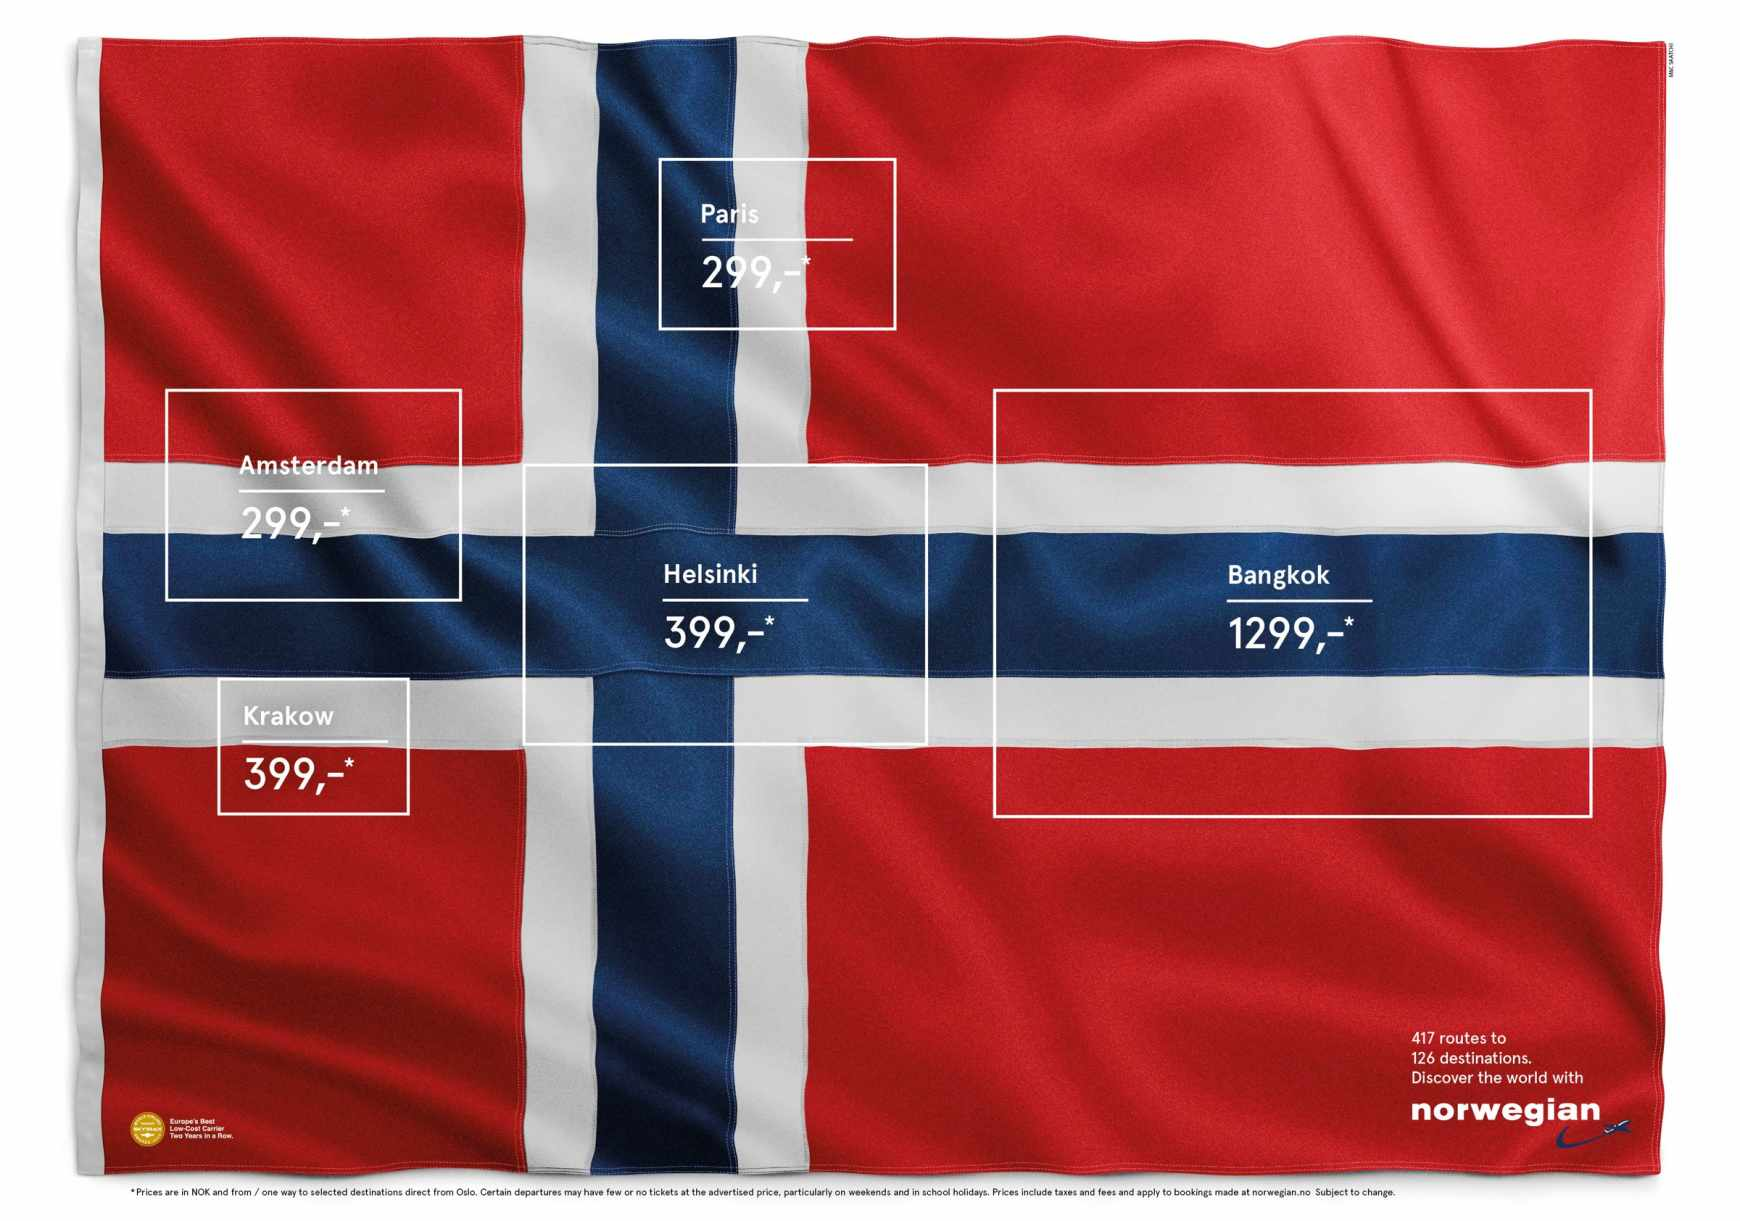 The flag of flags for @NorwegianAirlines by @mcsaatchisthlm. Featured in the new #ASmileintheMind https://t.co/kAio3Oj5NT